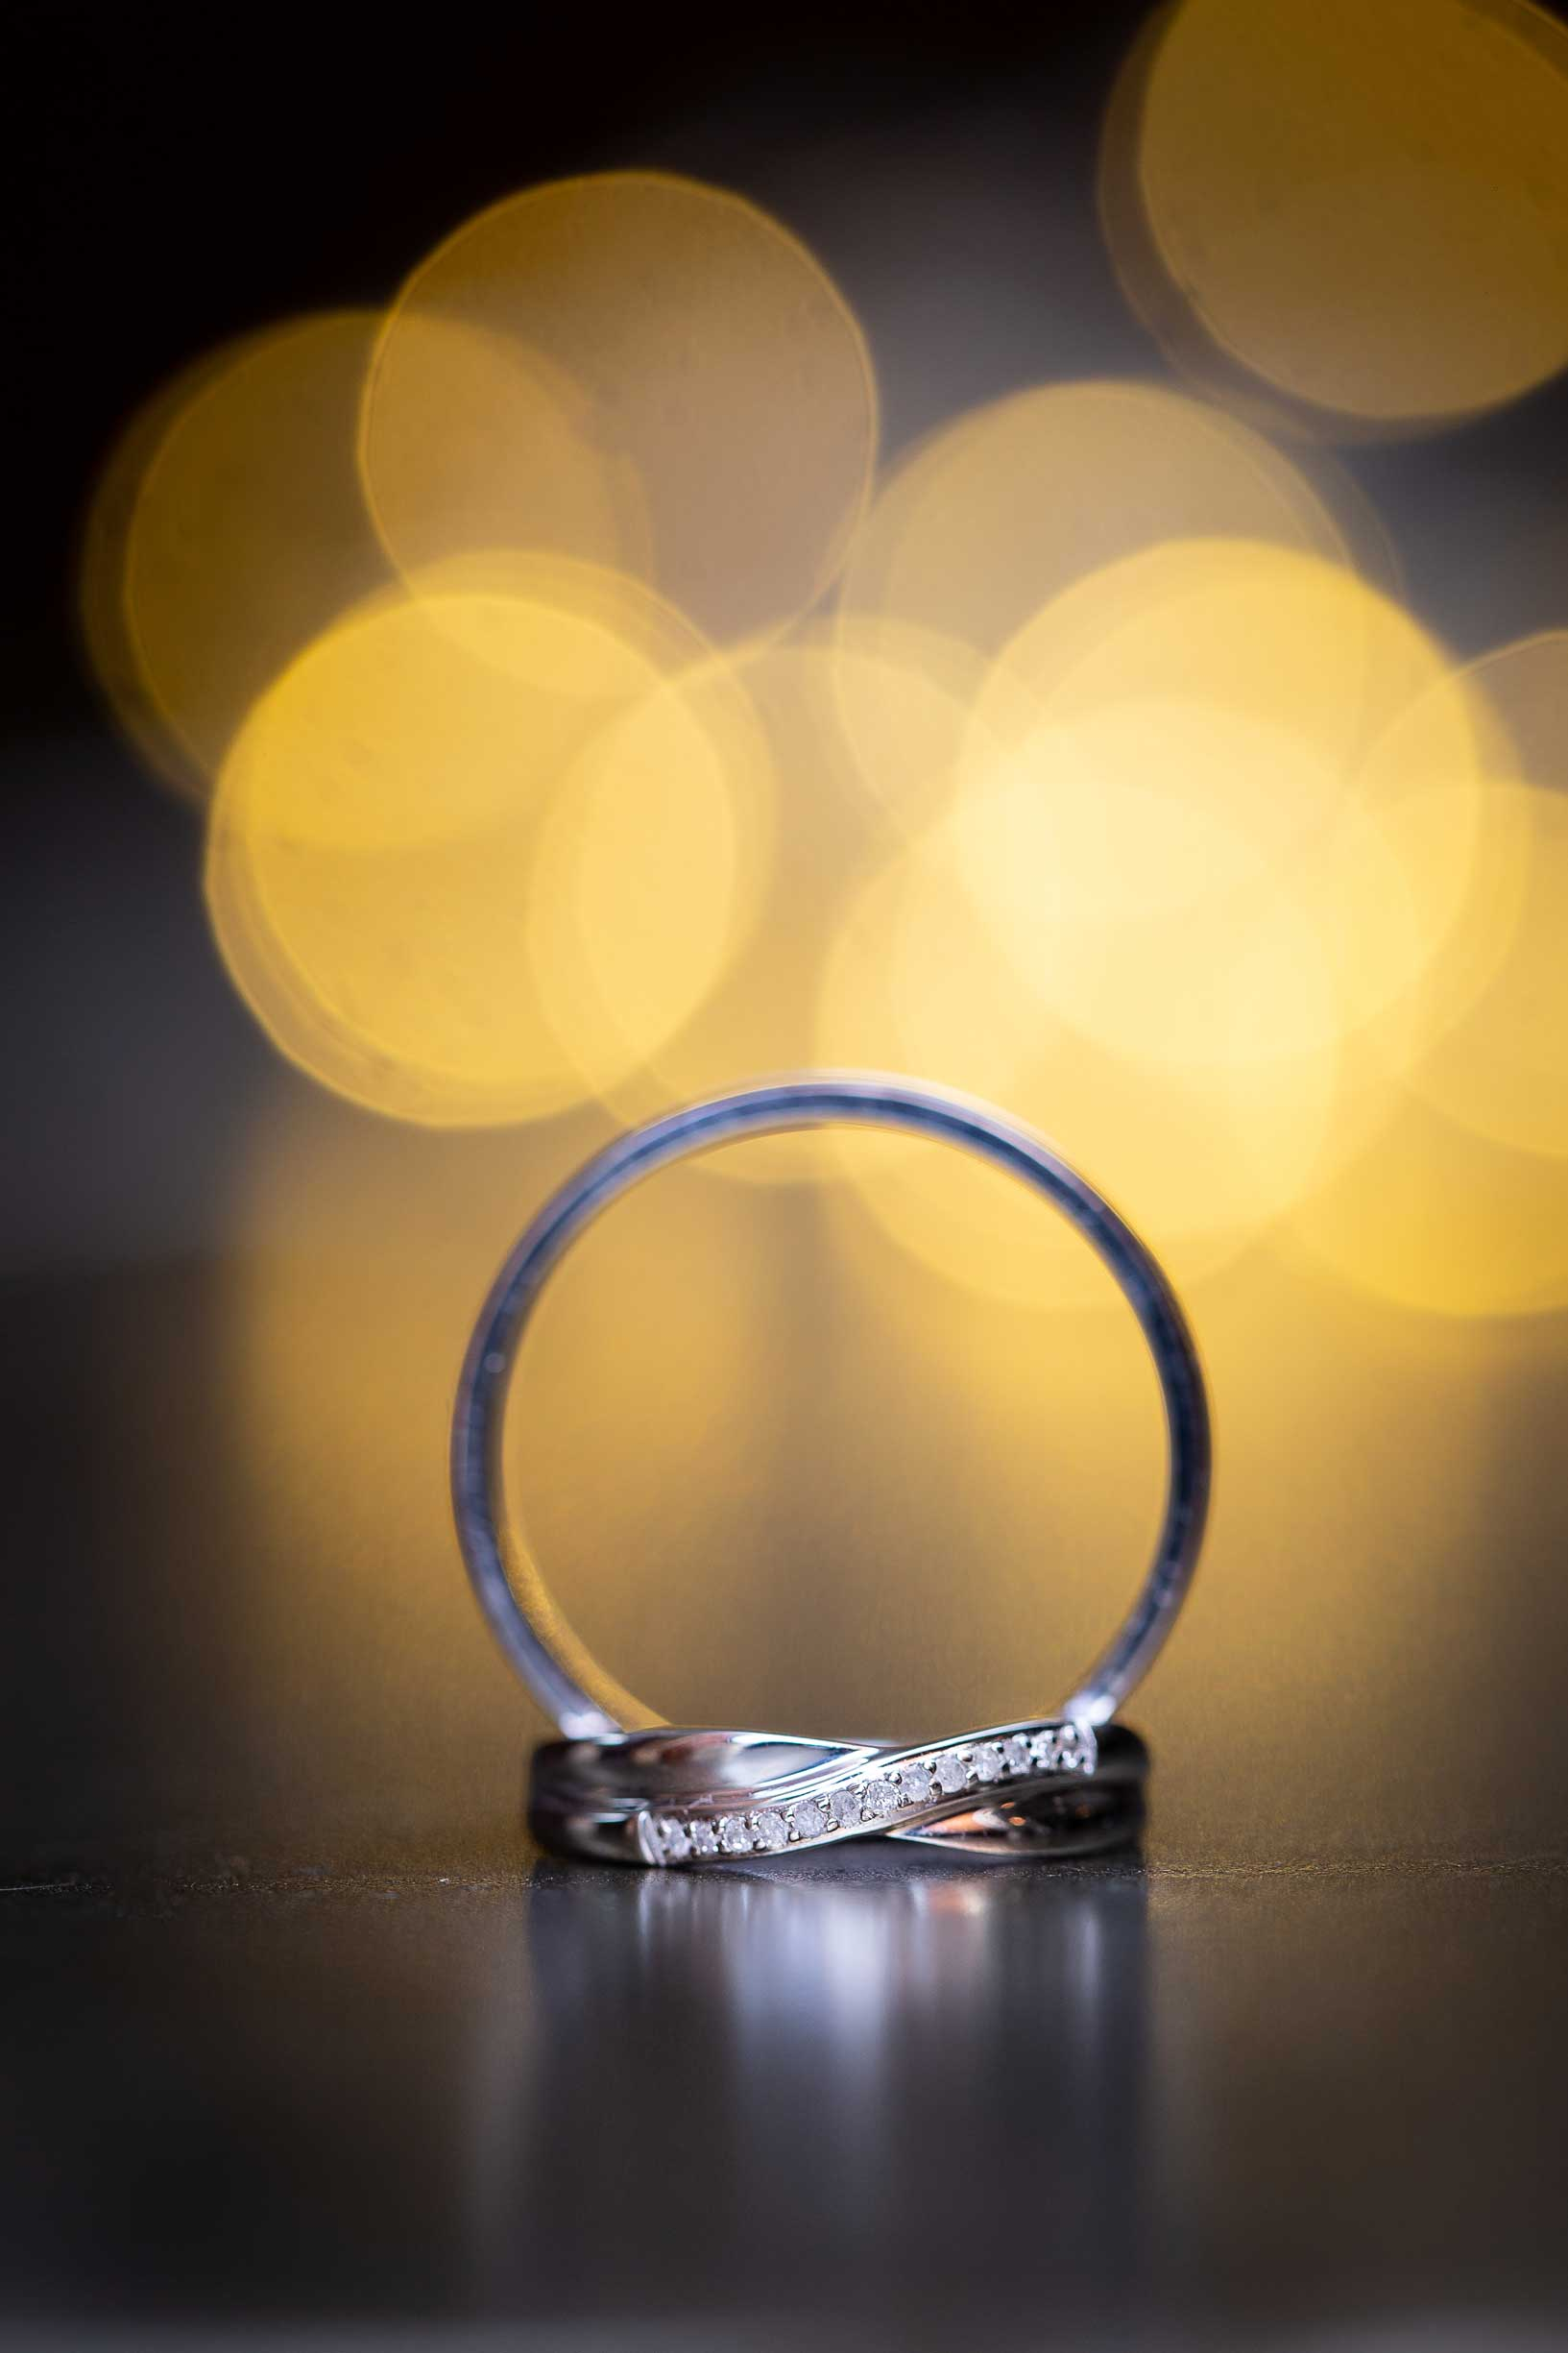 Photo of the wedding rings